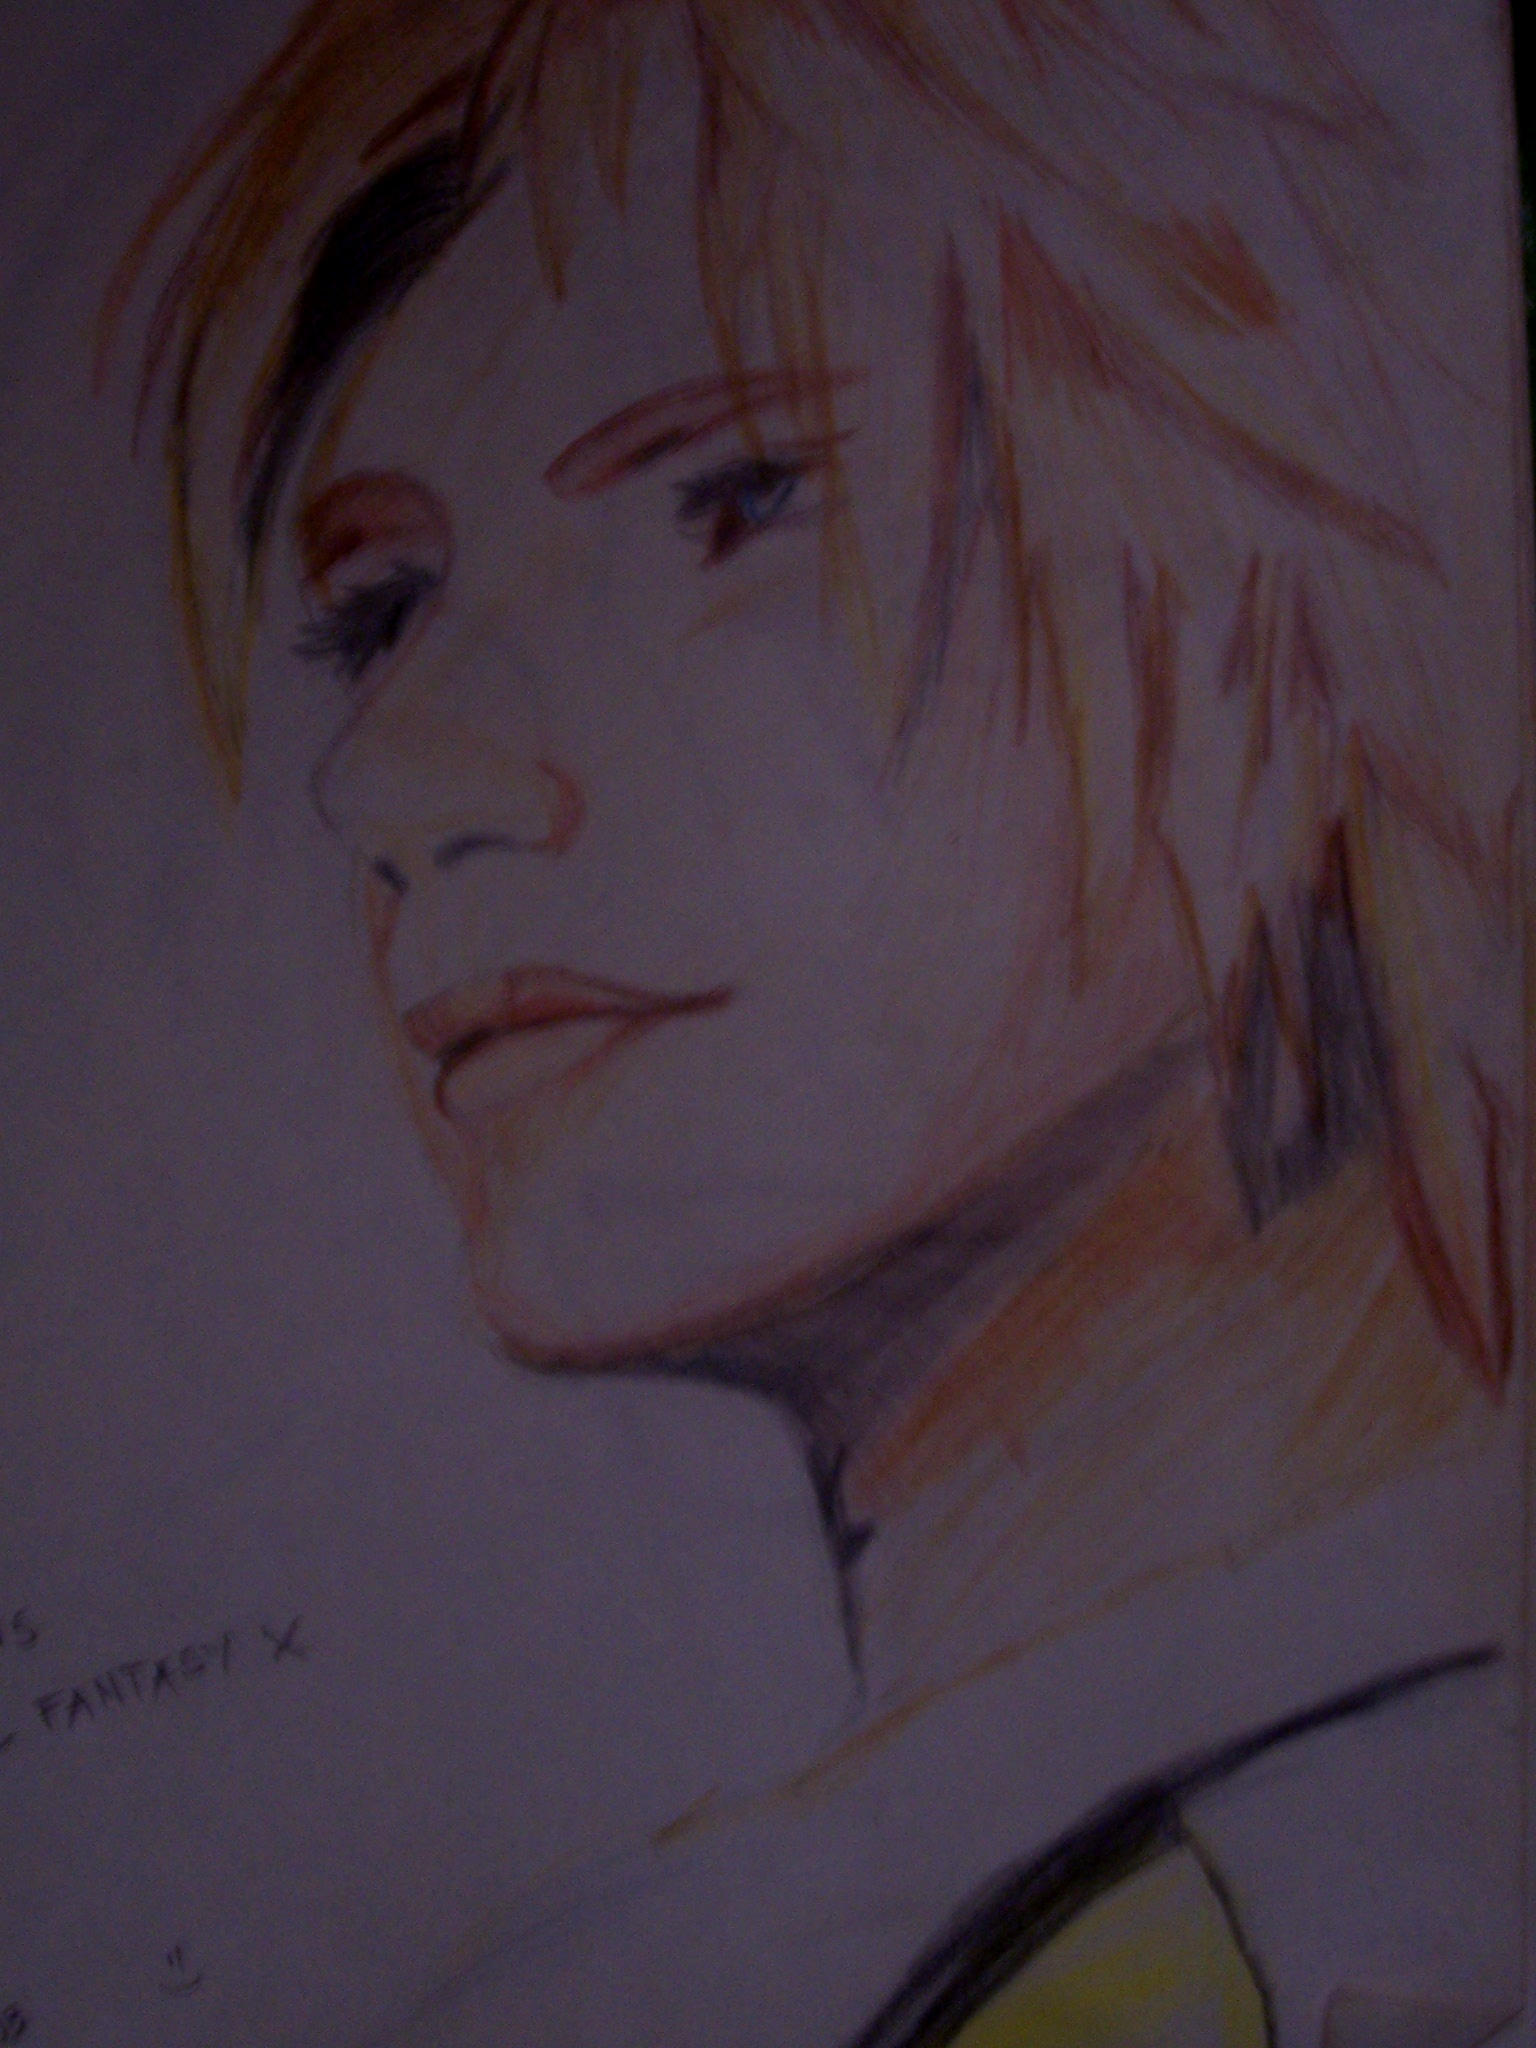 Tidus closeup by sorceressran